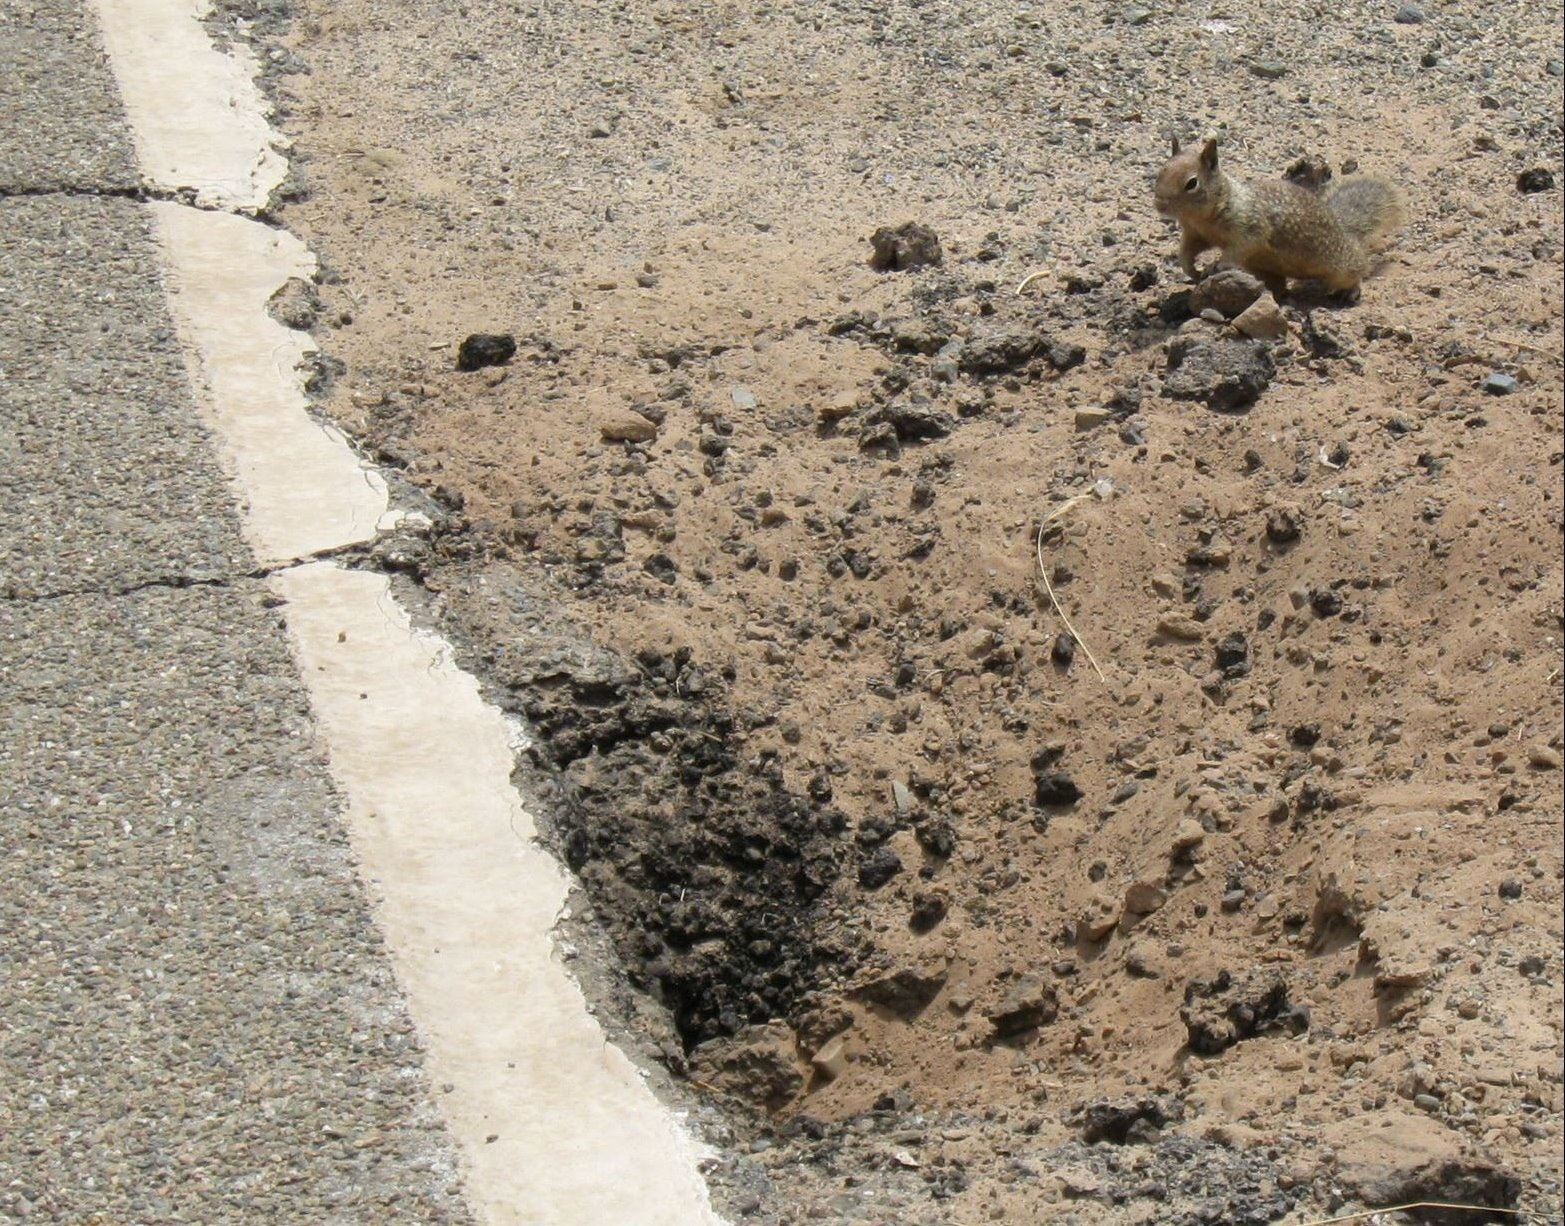 Ground squirrel and burrow opening next to a cracking roadside